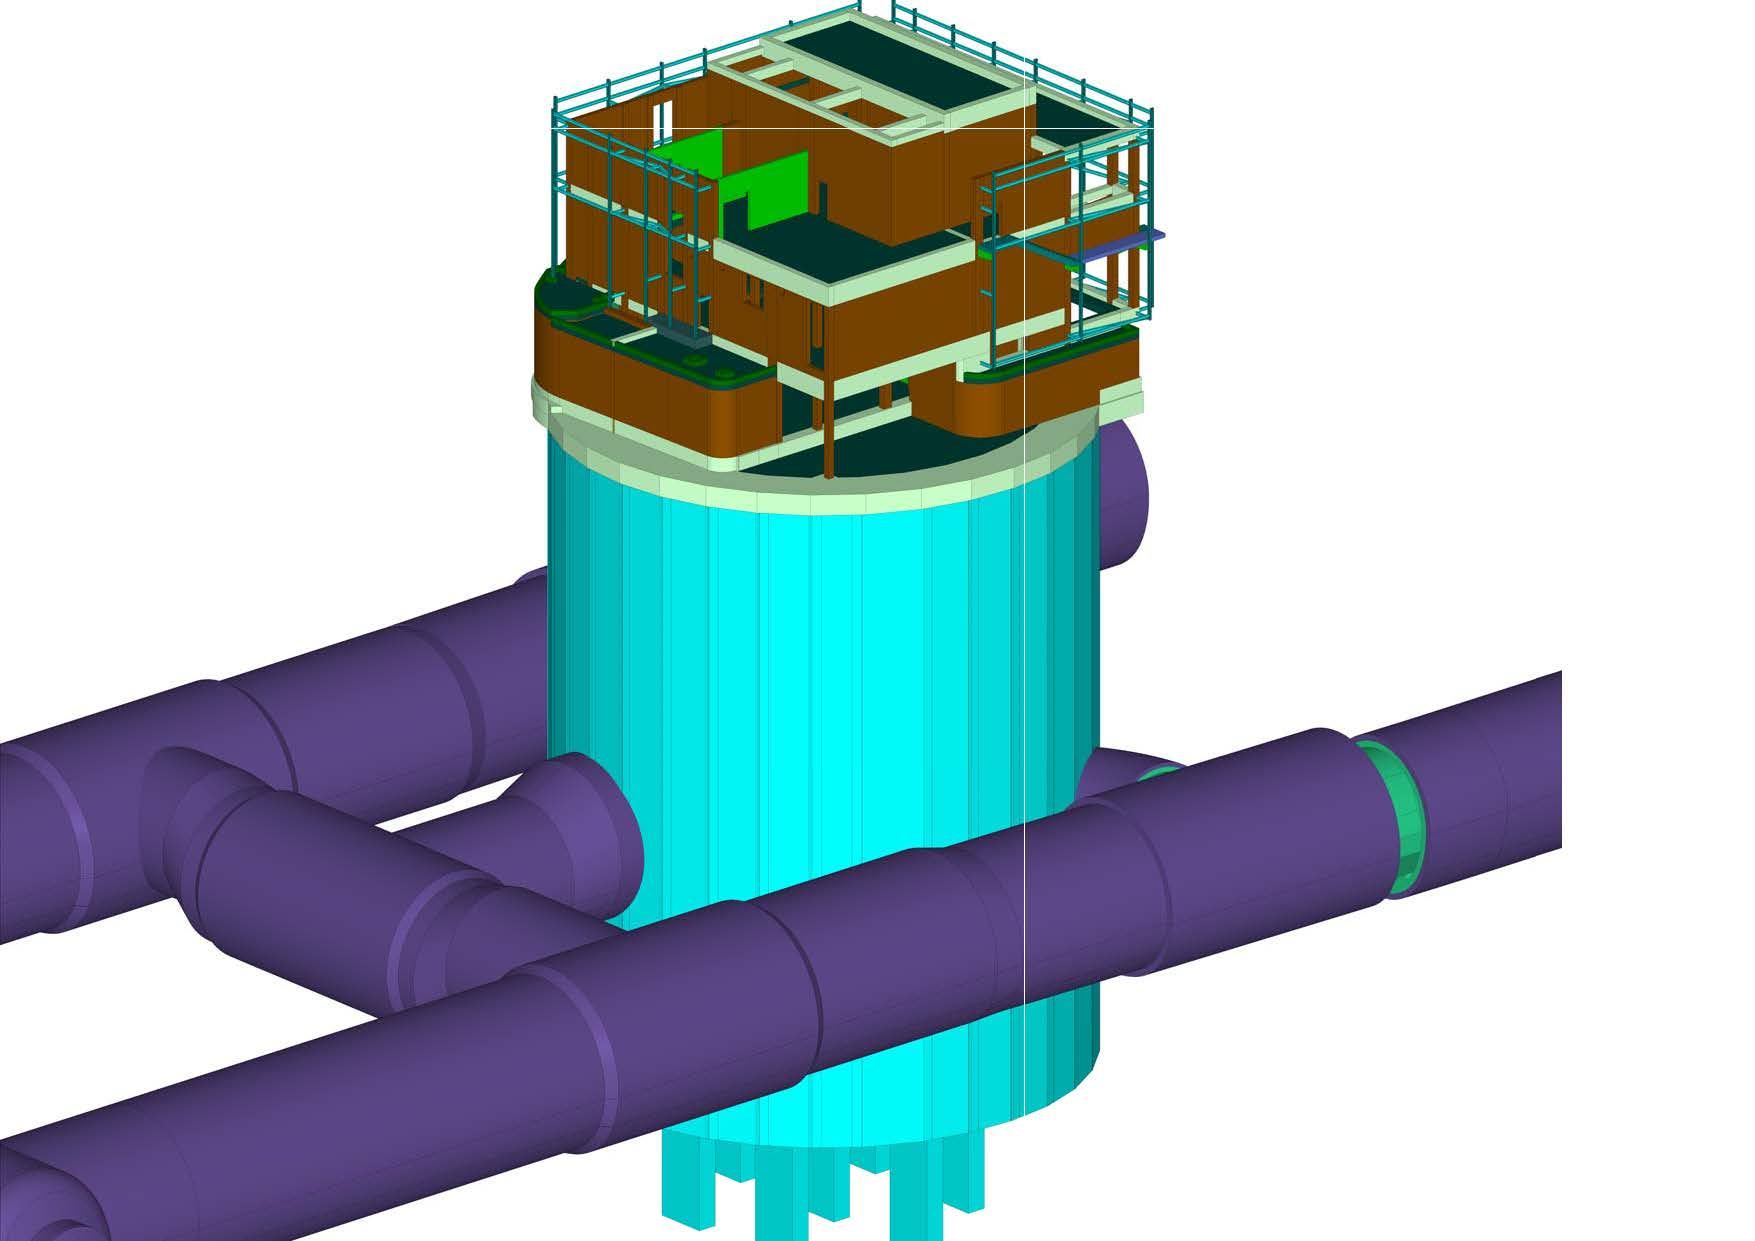 Figure 1 - Cambridge Heath Shaft 3D Model. SCL tunnels in purple